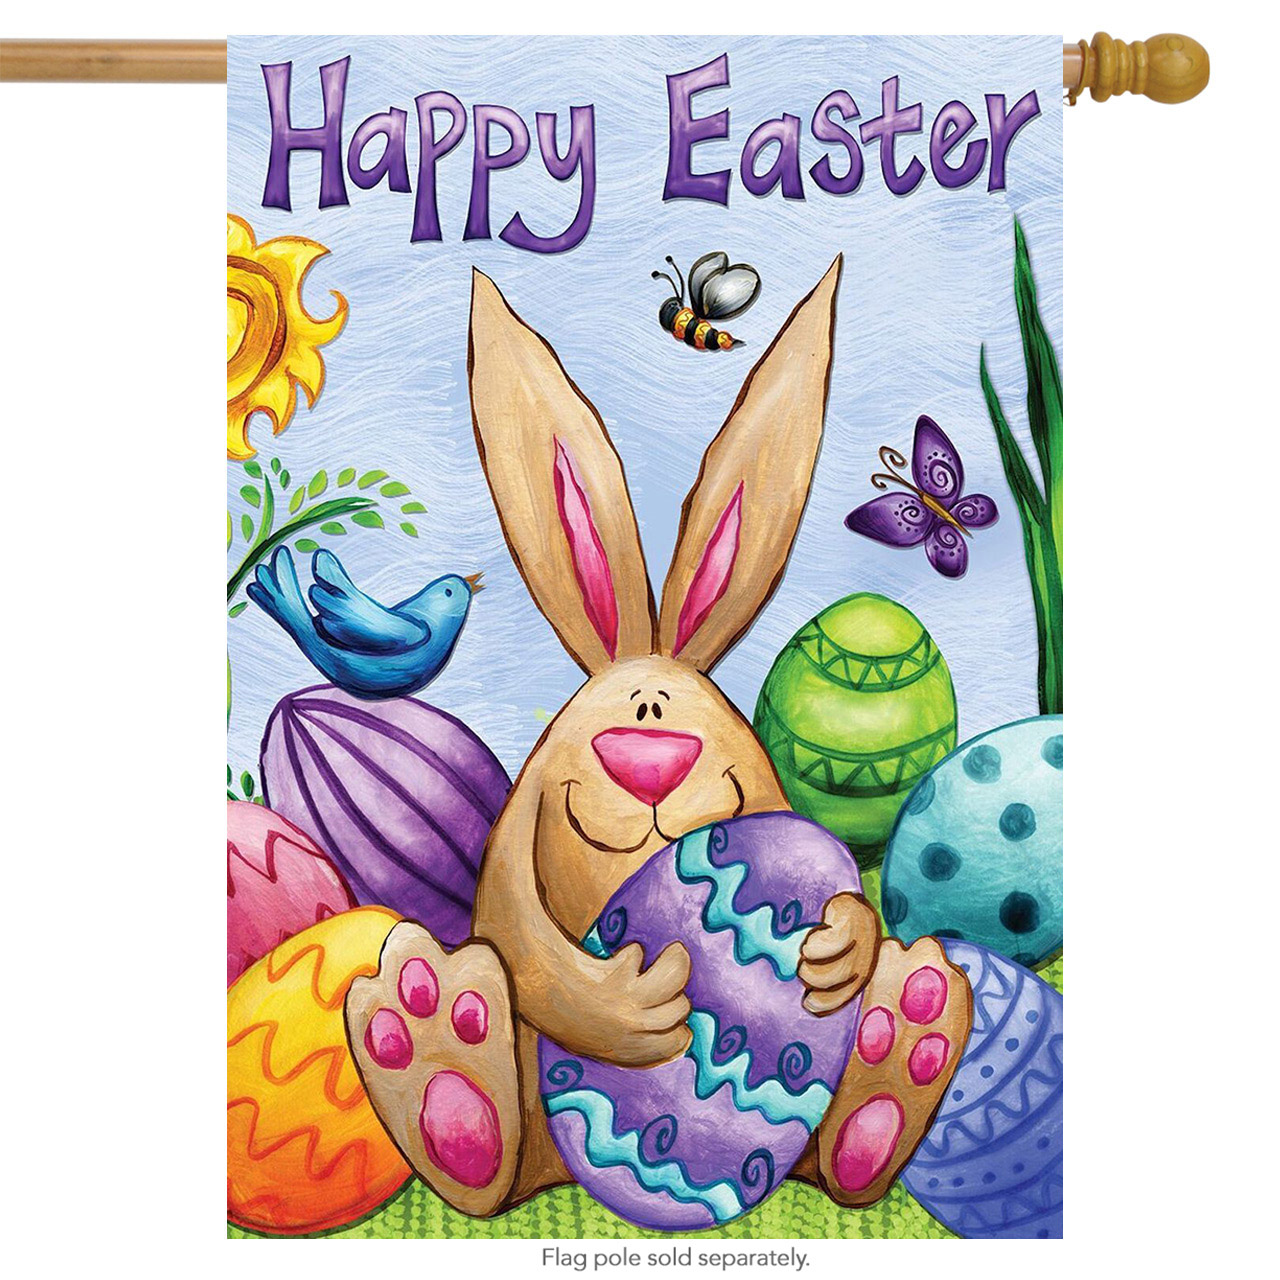 "Happy Easter Bunny House Flag Eggs Butterfly Holiday Briarwood Lane 28"" x 40"""